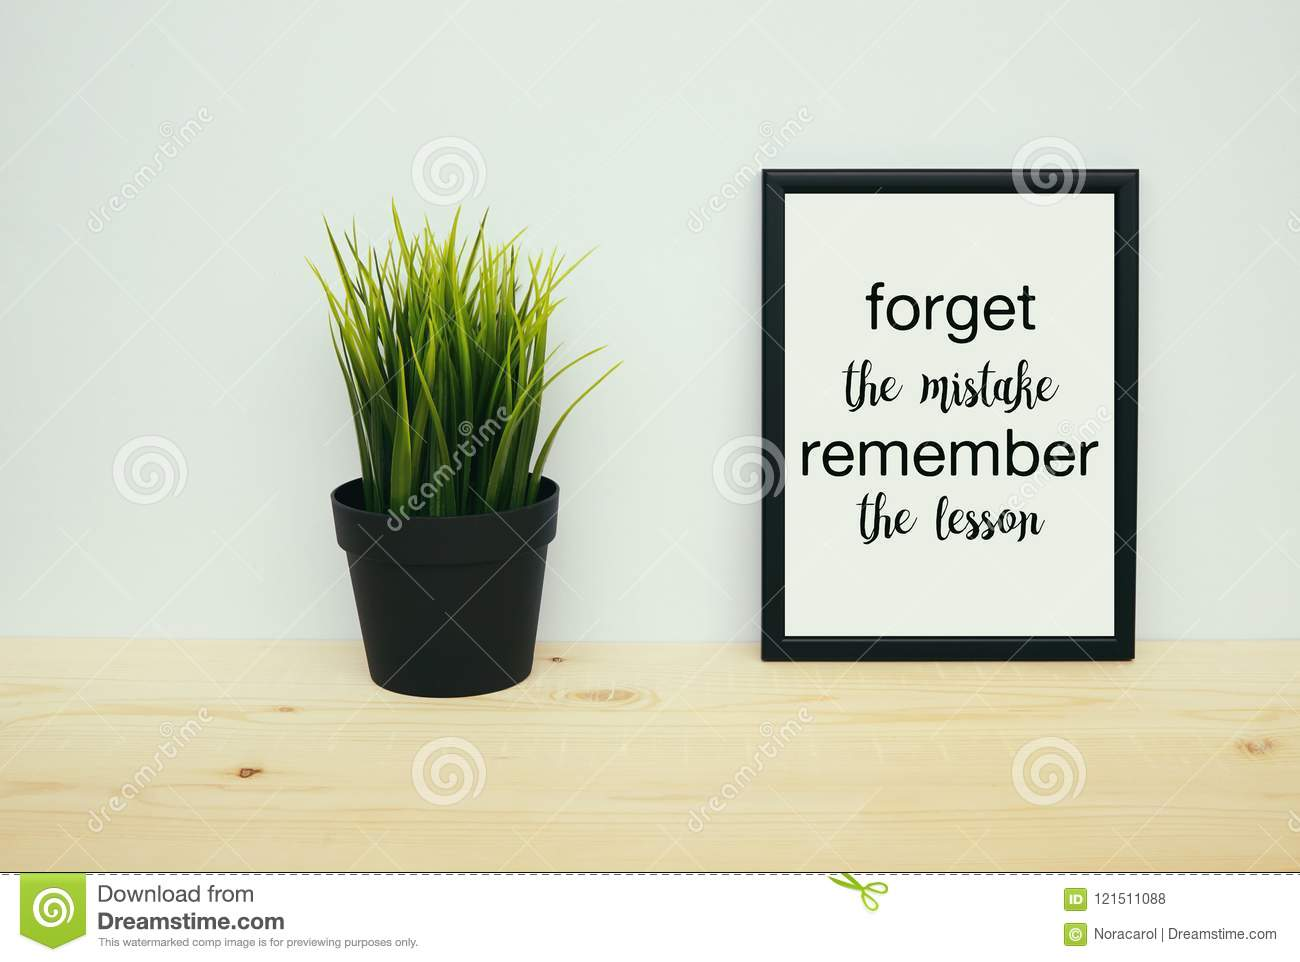 Forget the mistakes remember the lesson quote